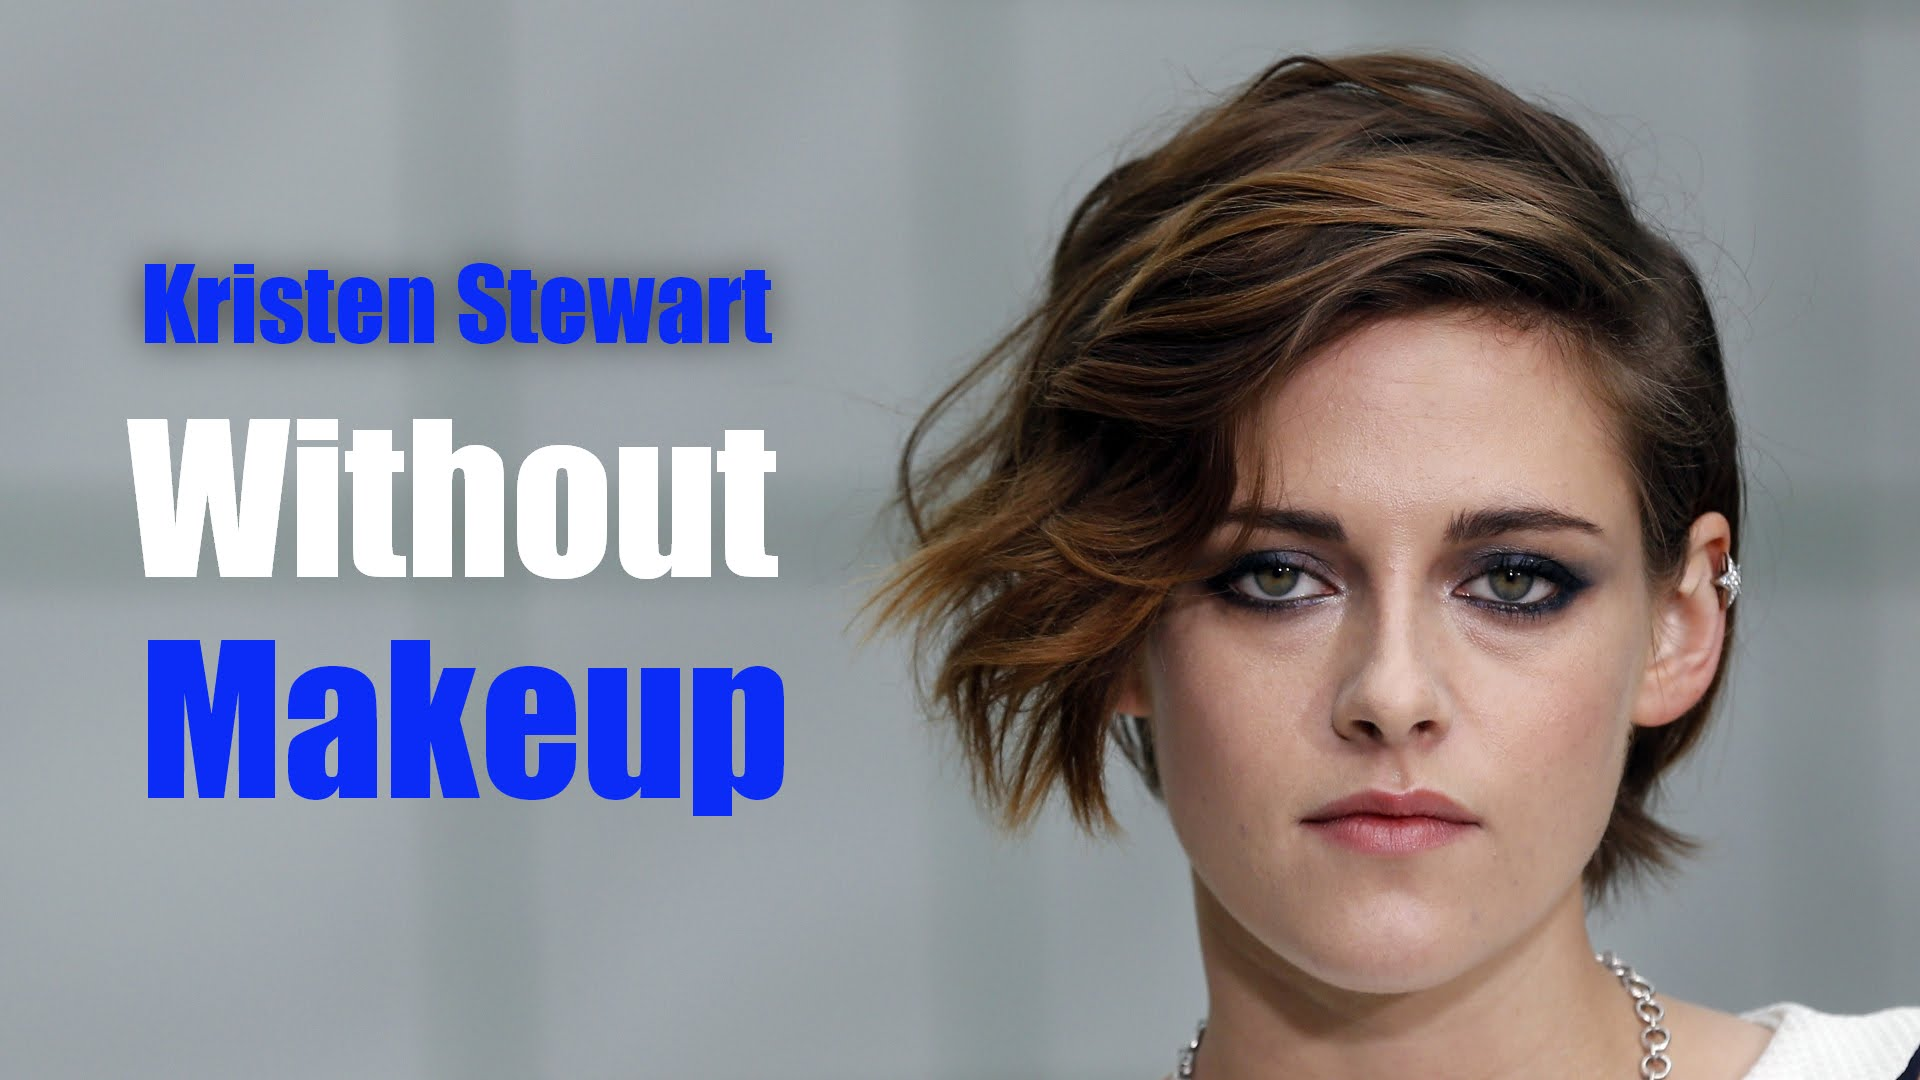 Kristen Stewart Without Makeup Photos